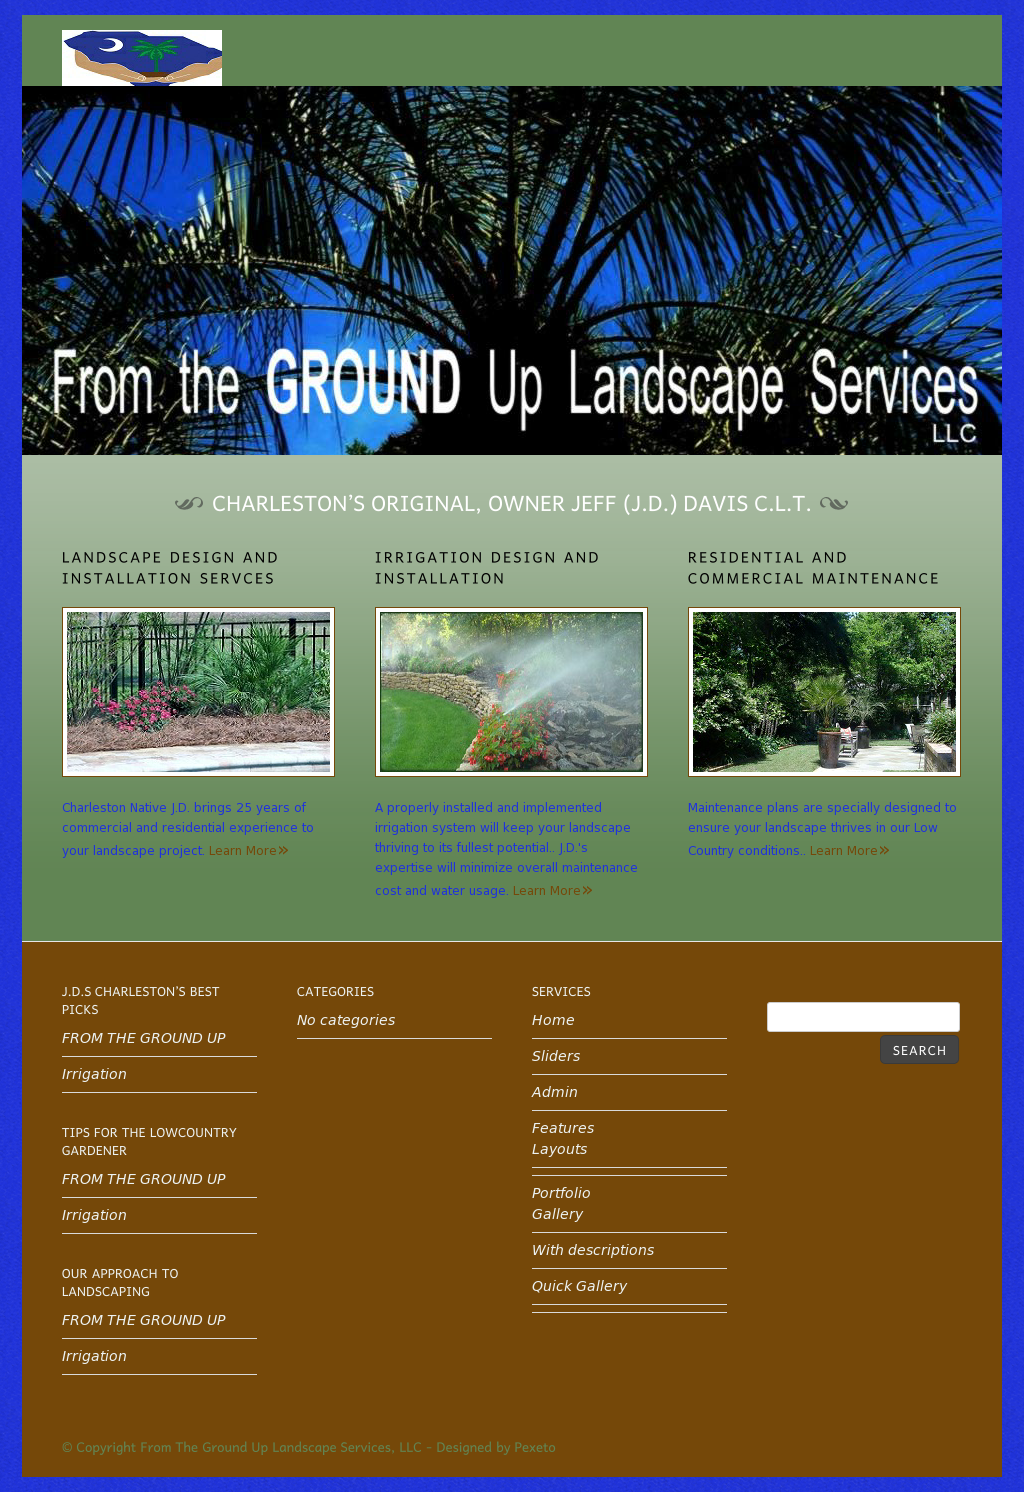 From The Ground Up Landscape Services Competitors, Revenue and Employees -  Owler Company Profile - From The Ground Up Landscape Services Competitors, Revenue And